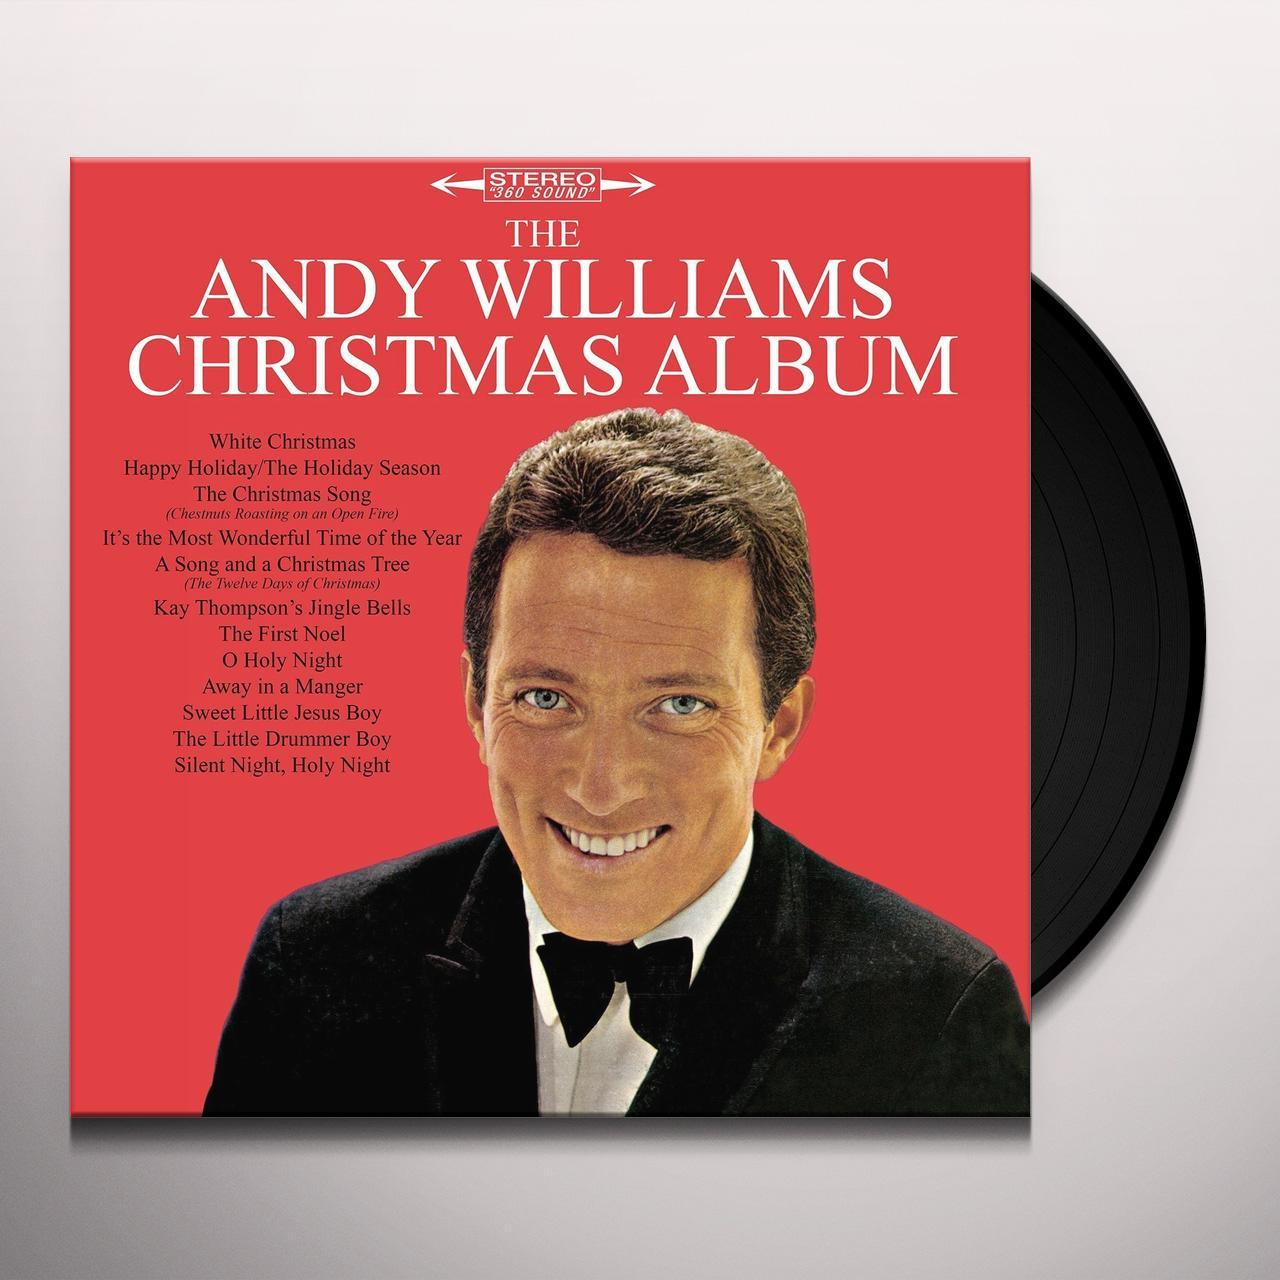 andy williams christmas album vinyl record - Andy Williams White Christmas